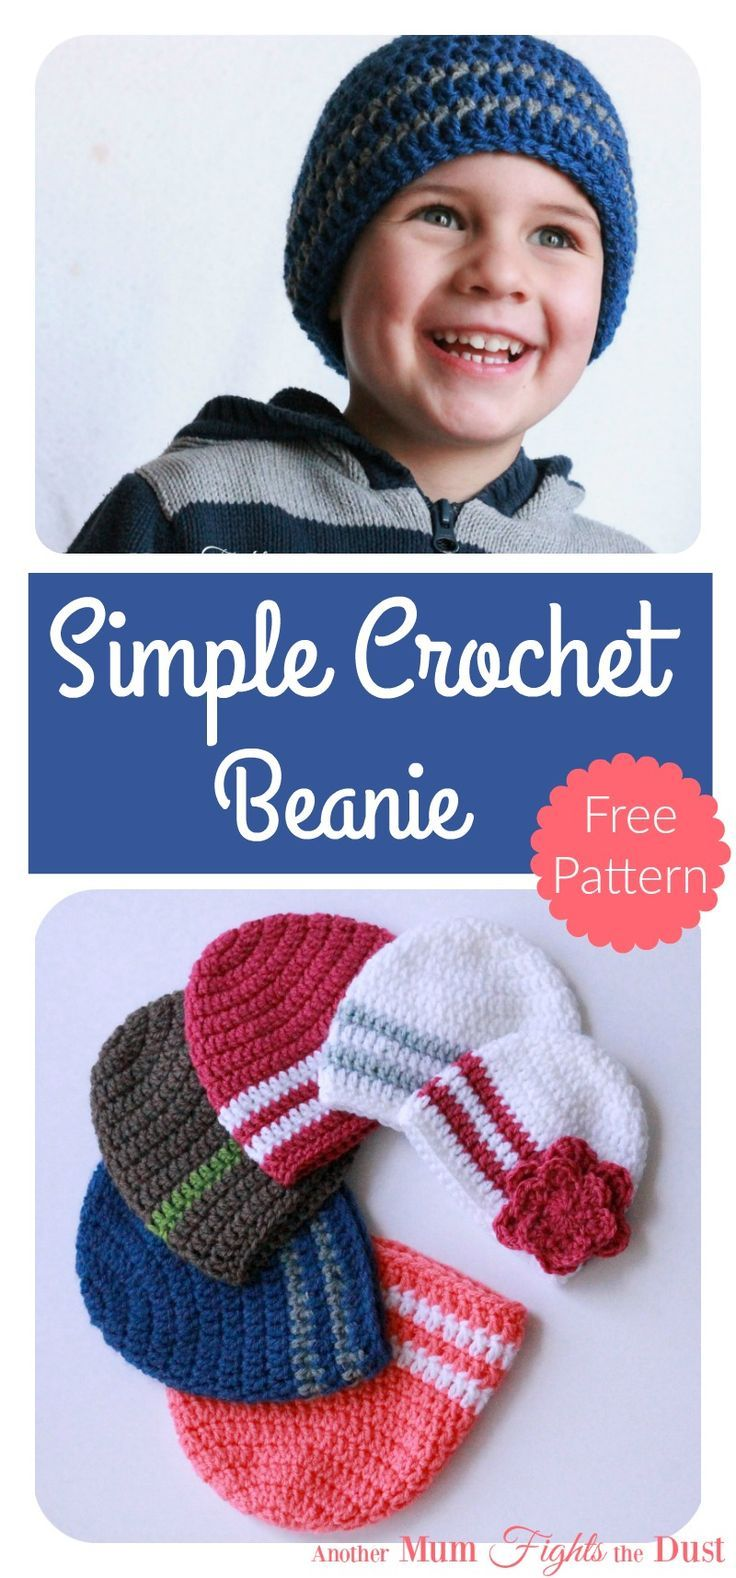 Simple crochet beanie free pattern easy crochet hat crochet free crochet pattern easy crochet hat pattern crochet beanie pattern bankloansurffo Images